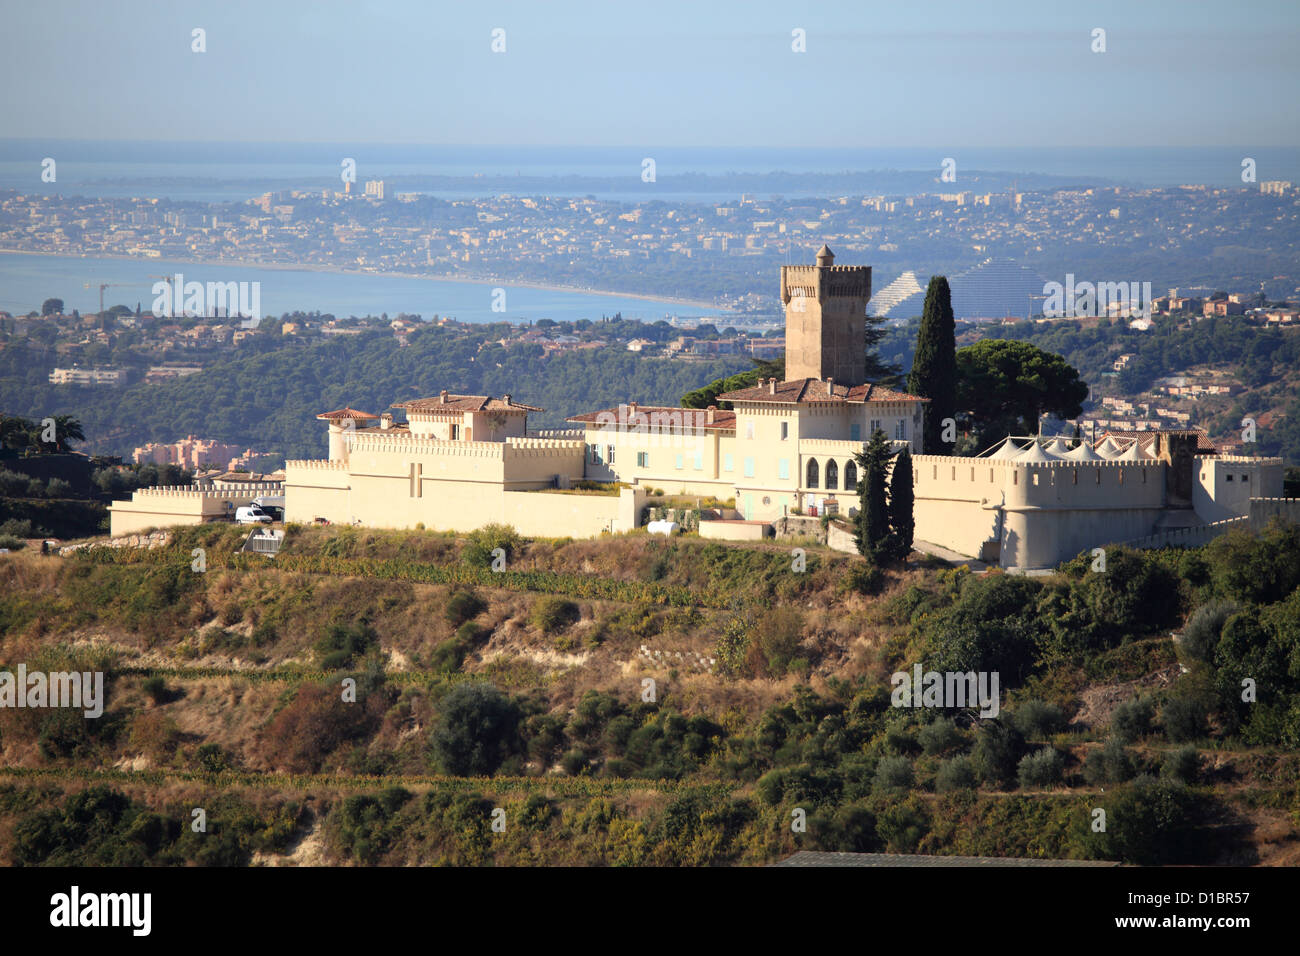 The Chateau De Cremat In Saint Roman De Bellet Near Nice City Stock